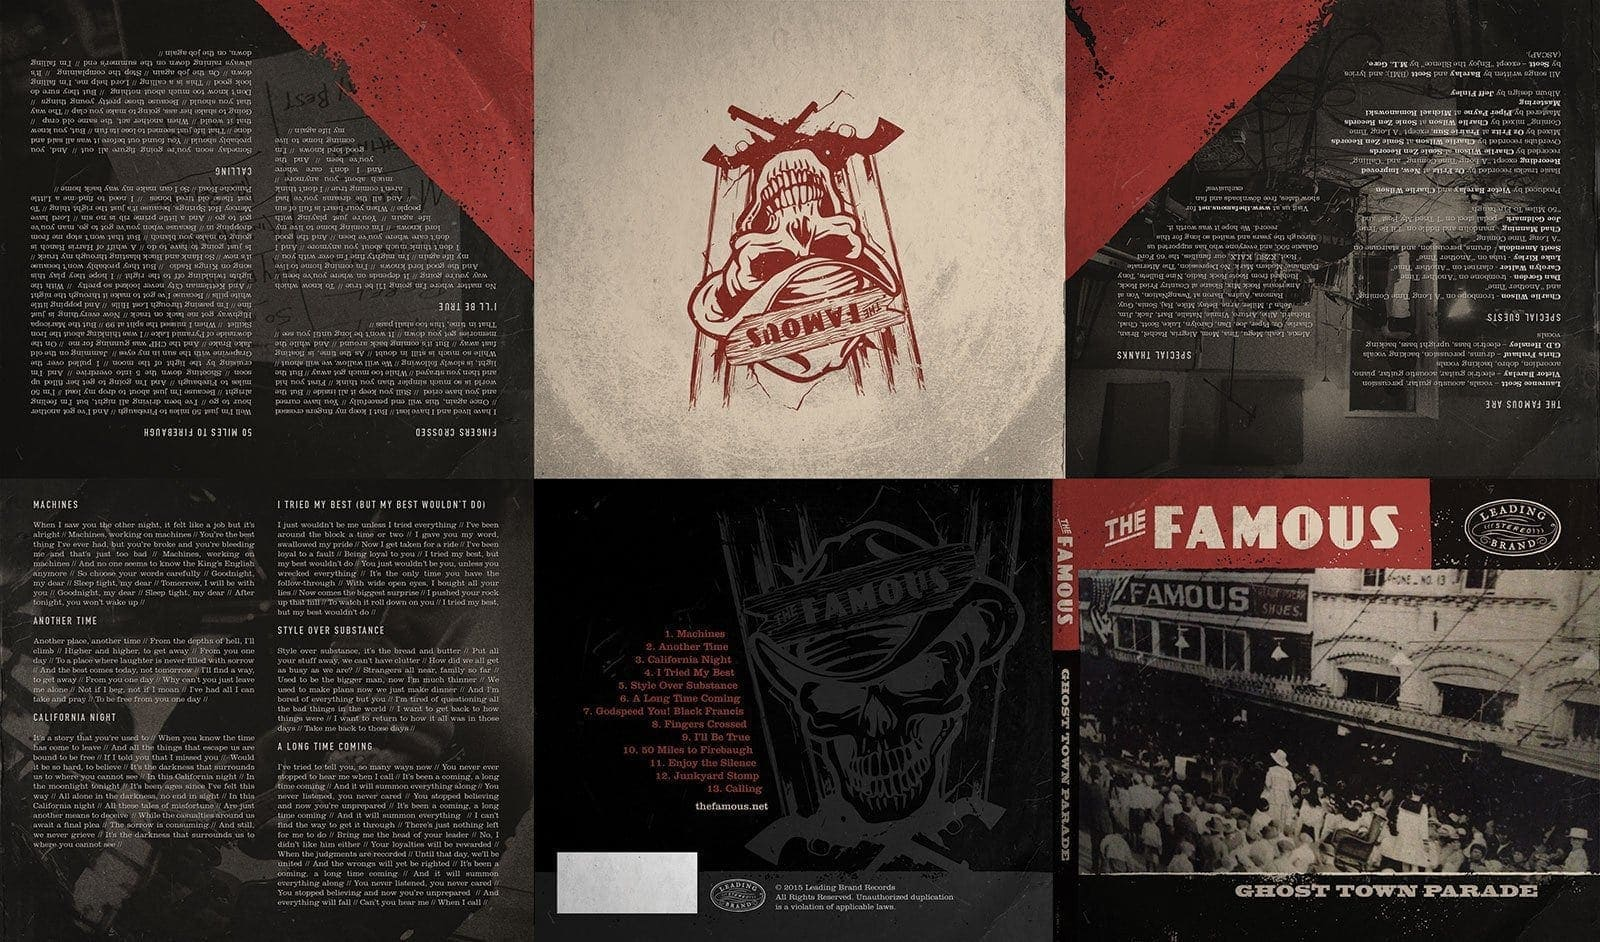 The Famous - Ghost Town Parade - album art by Jeff Finley